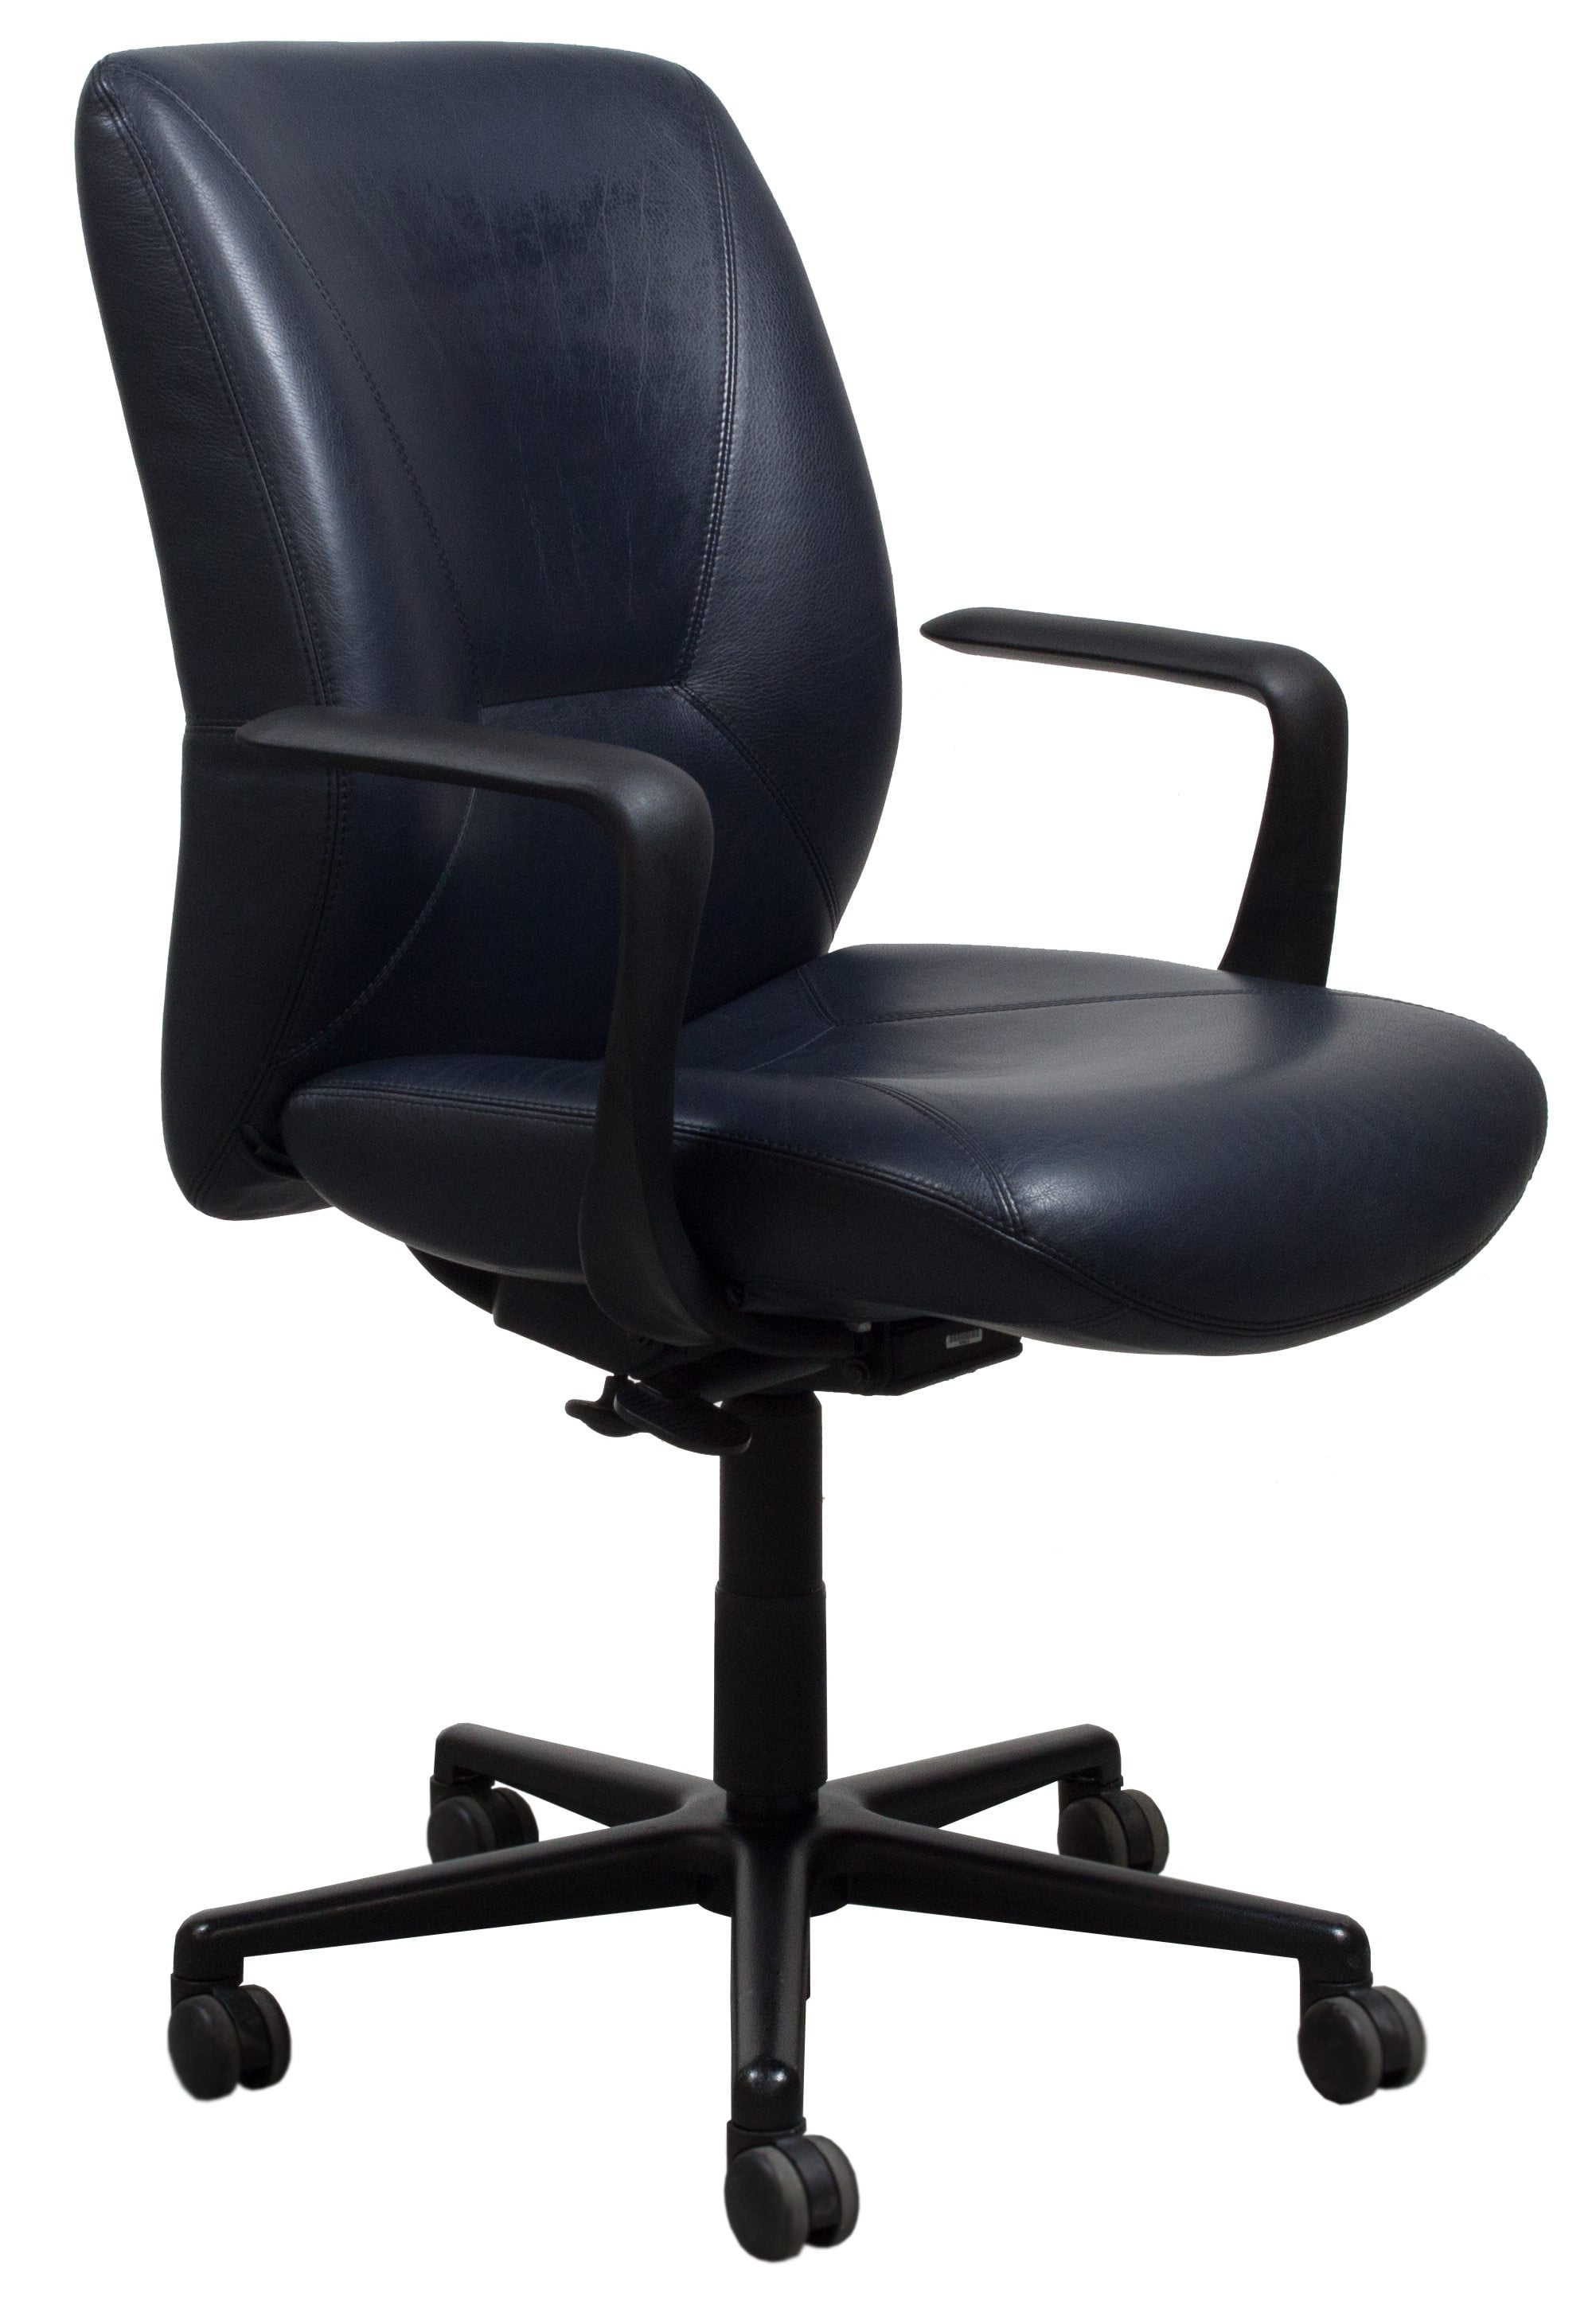 navy office chair nursery ikea keilhauer respons leather used task national